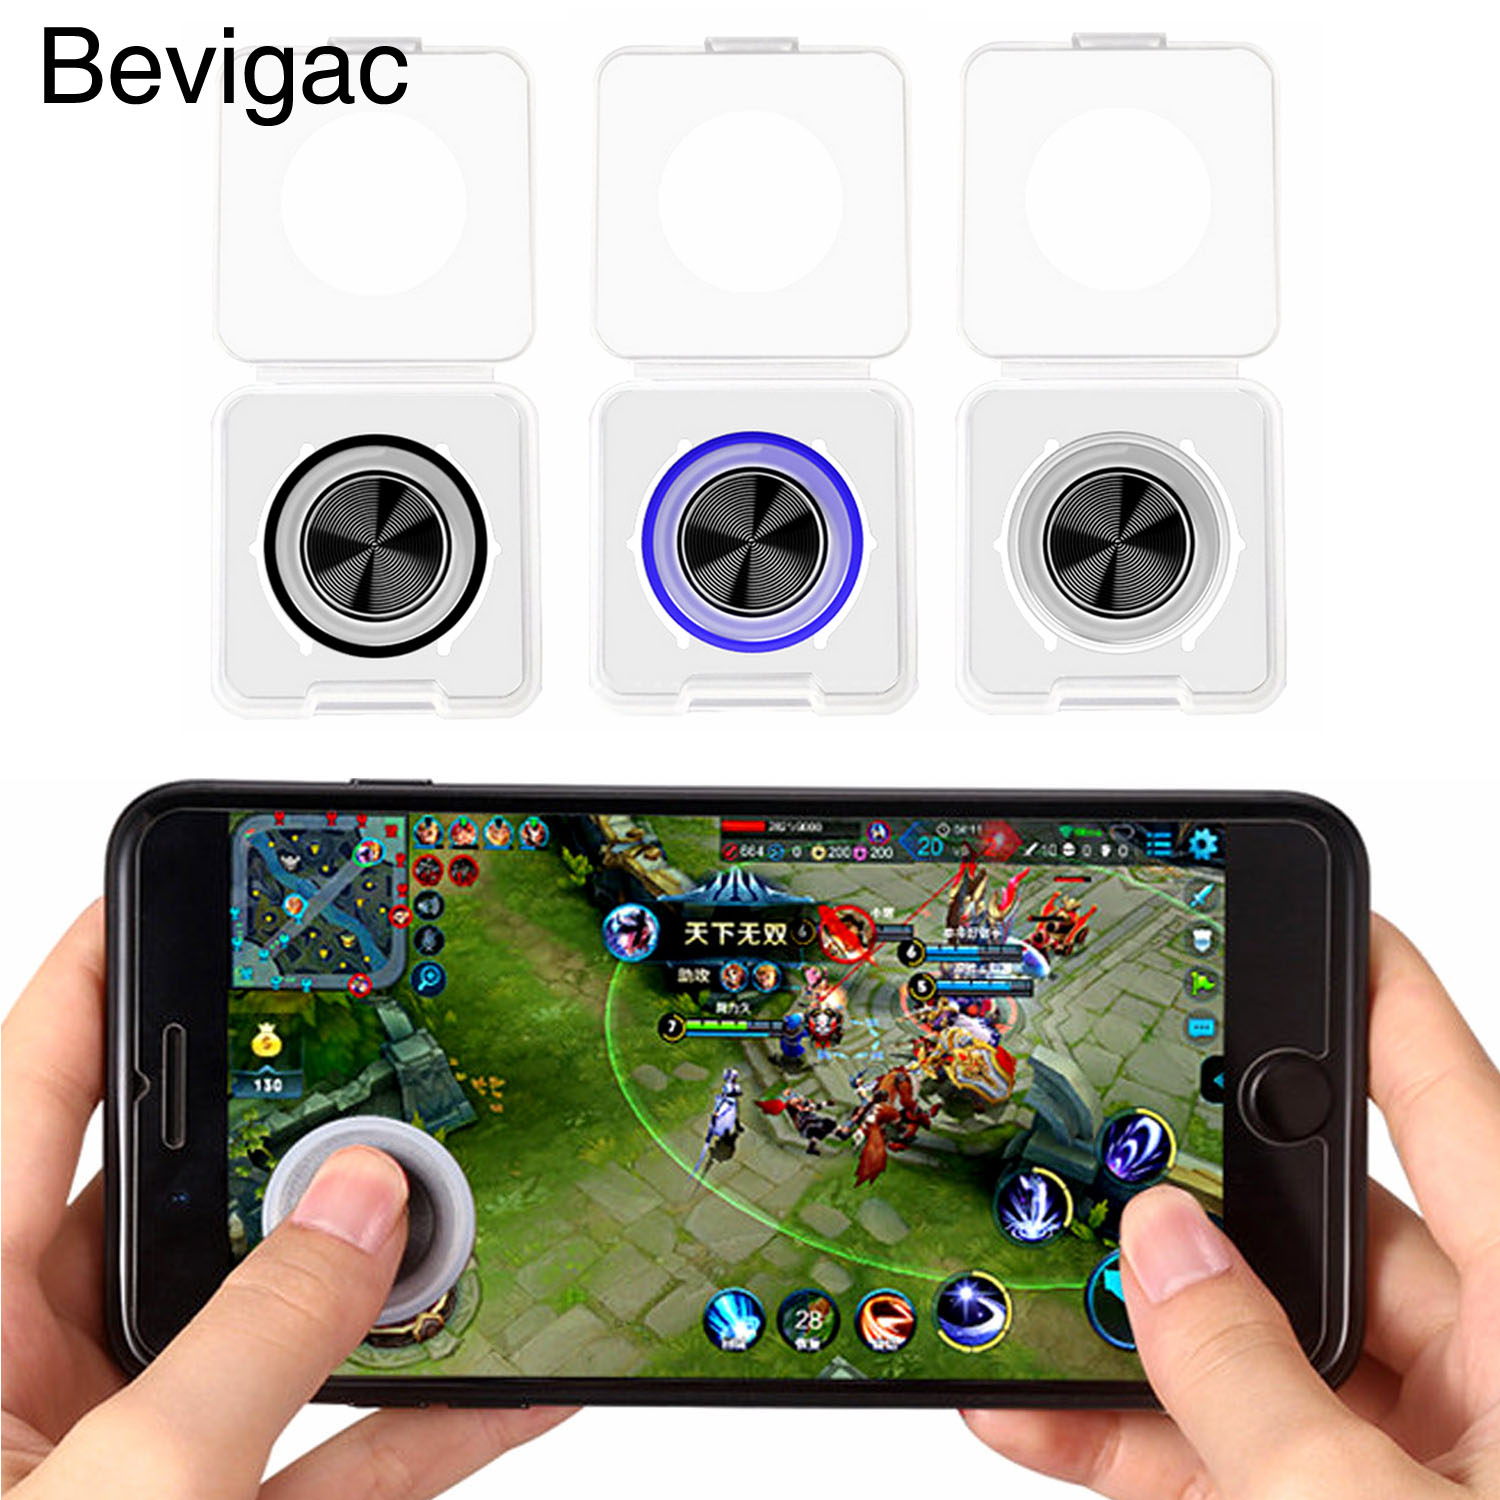 Bevigac Mobile Game Joystick Rocker Touch Screen Joypad Controller with Dust-proof Storage Box for iPhone iPad Tablet PUBG Game image